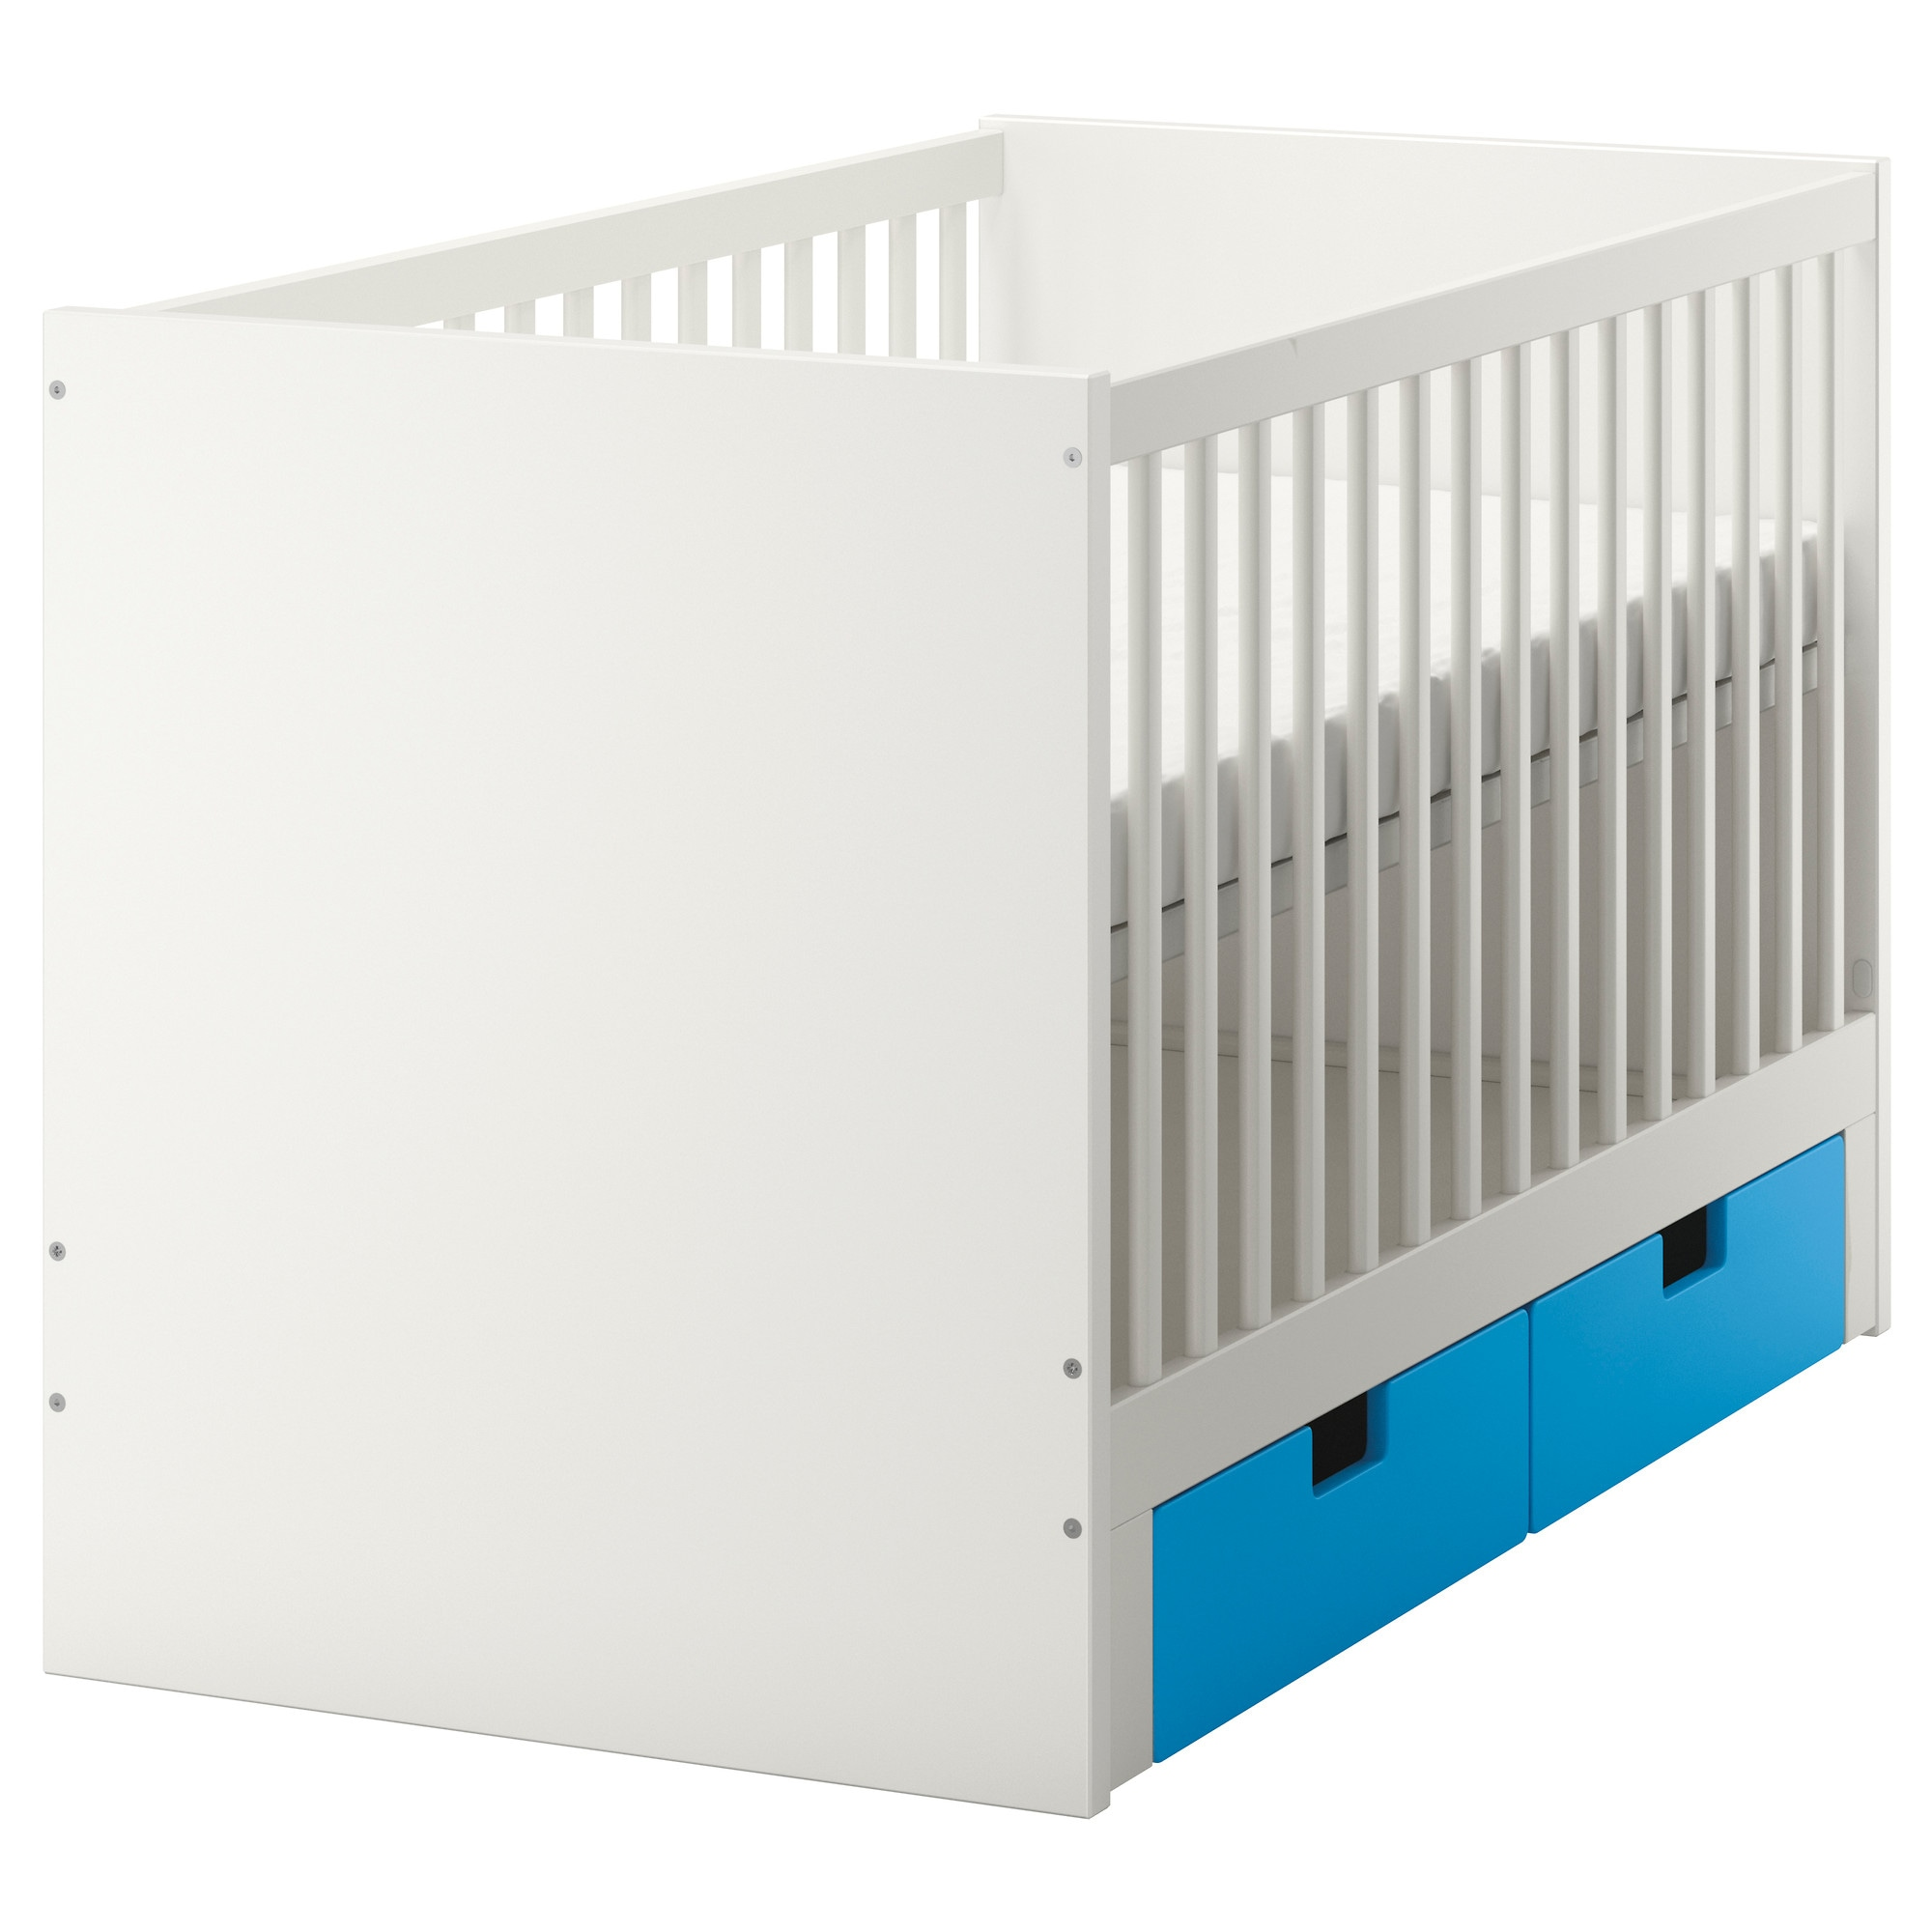 Crib price range - Stuva Crib With Drawers Blue Length 54 3 4 Width 29